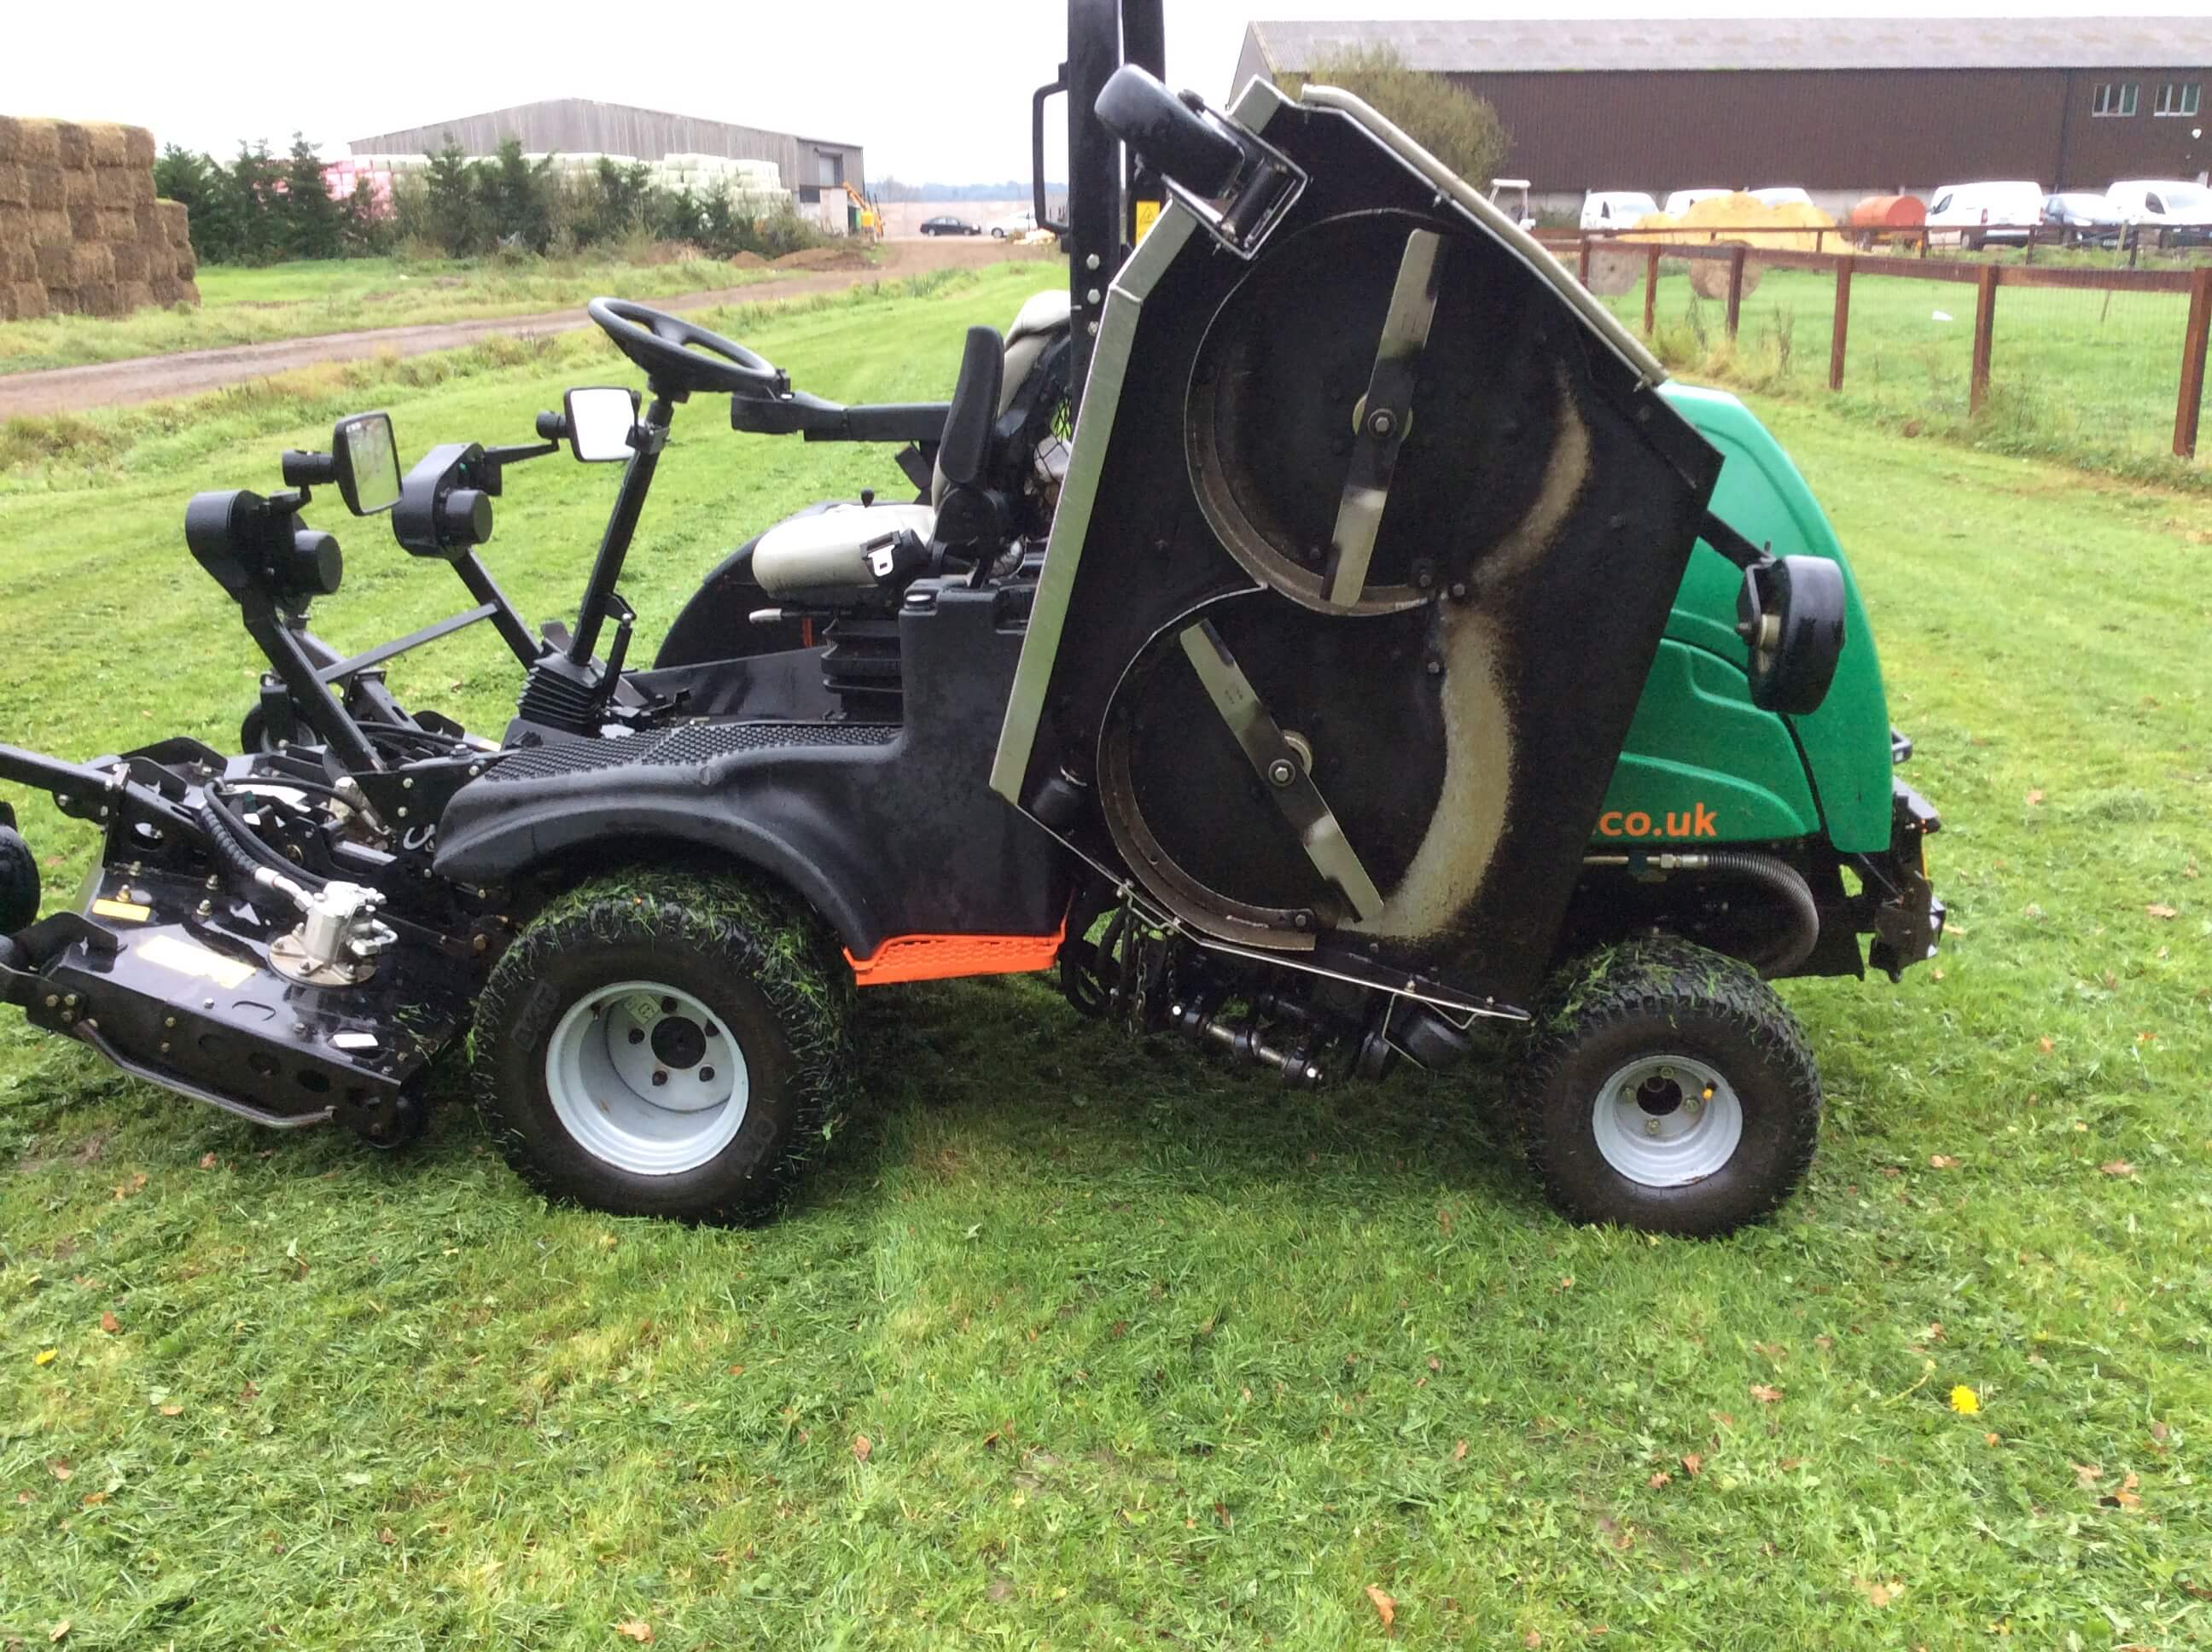 Turfleet Hire Well Maintained Used Machinery For Sale in UK